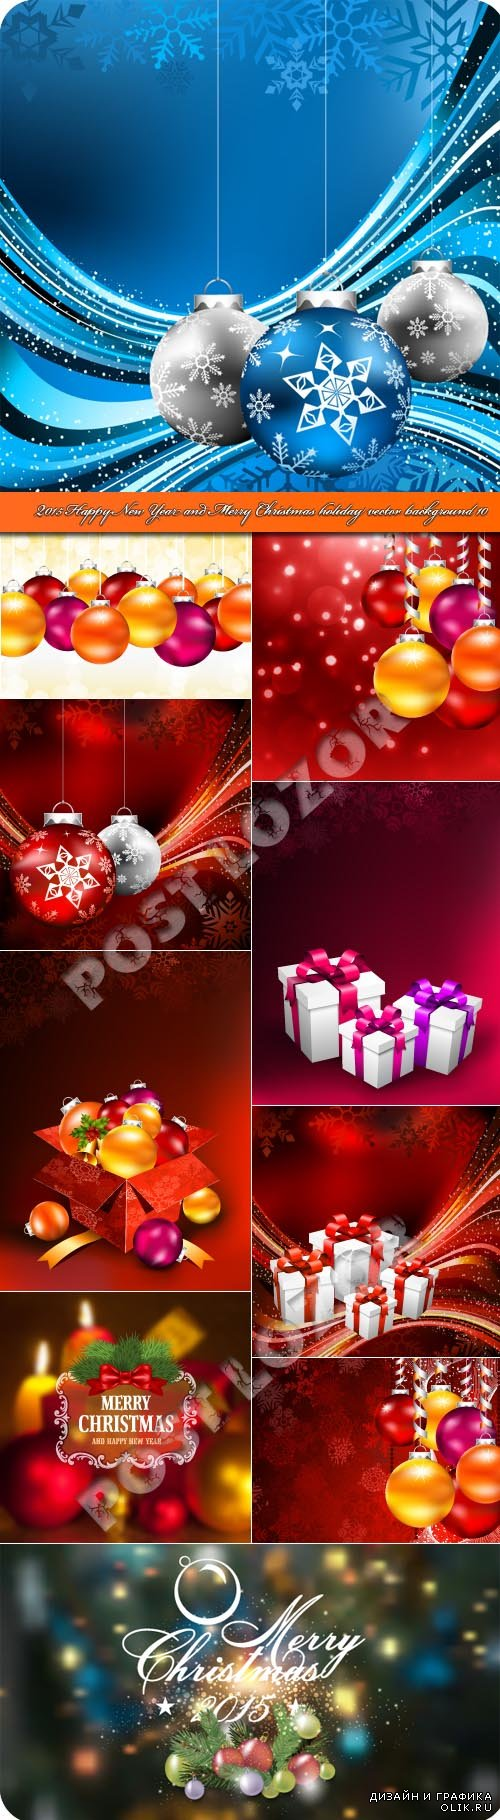 2015 Happy New Year and Merry Christmas holiday vector background 10